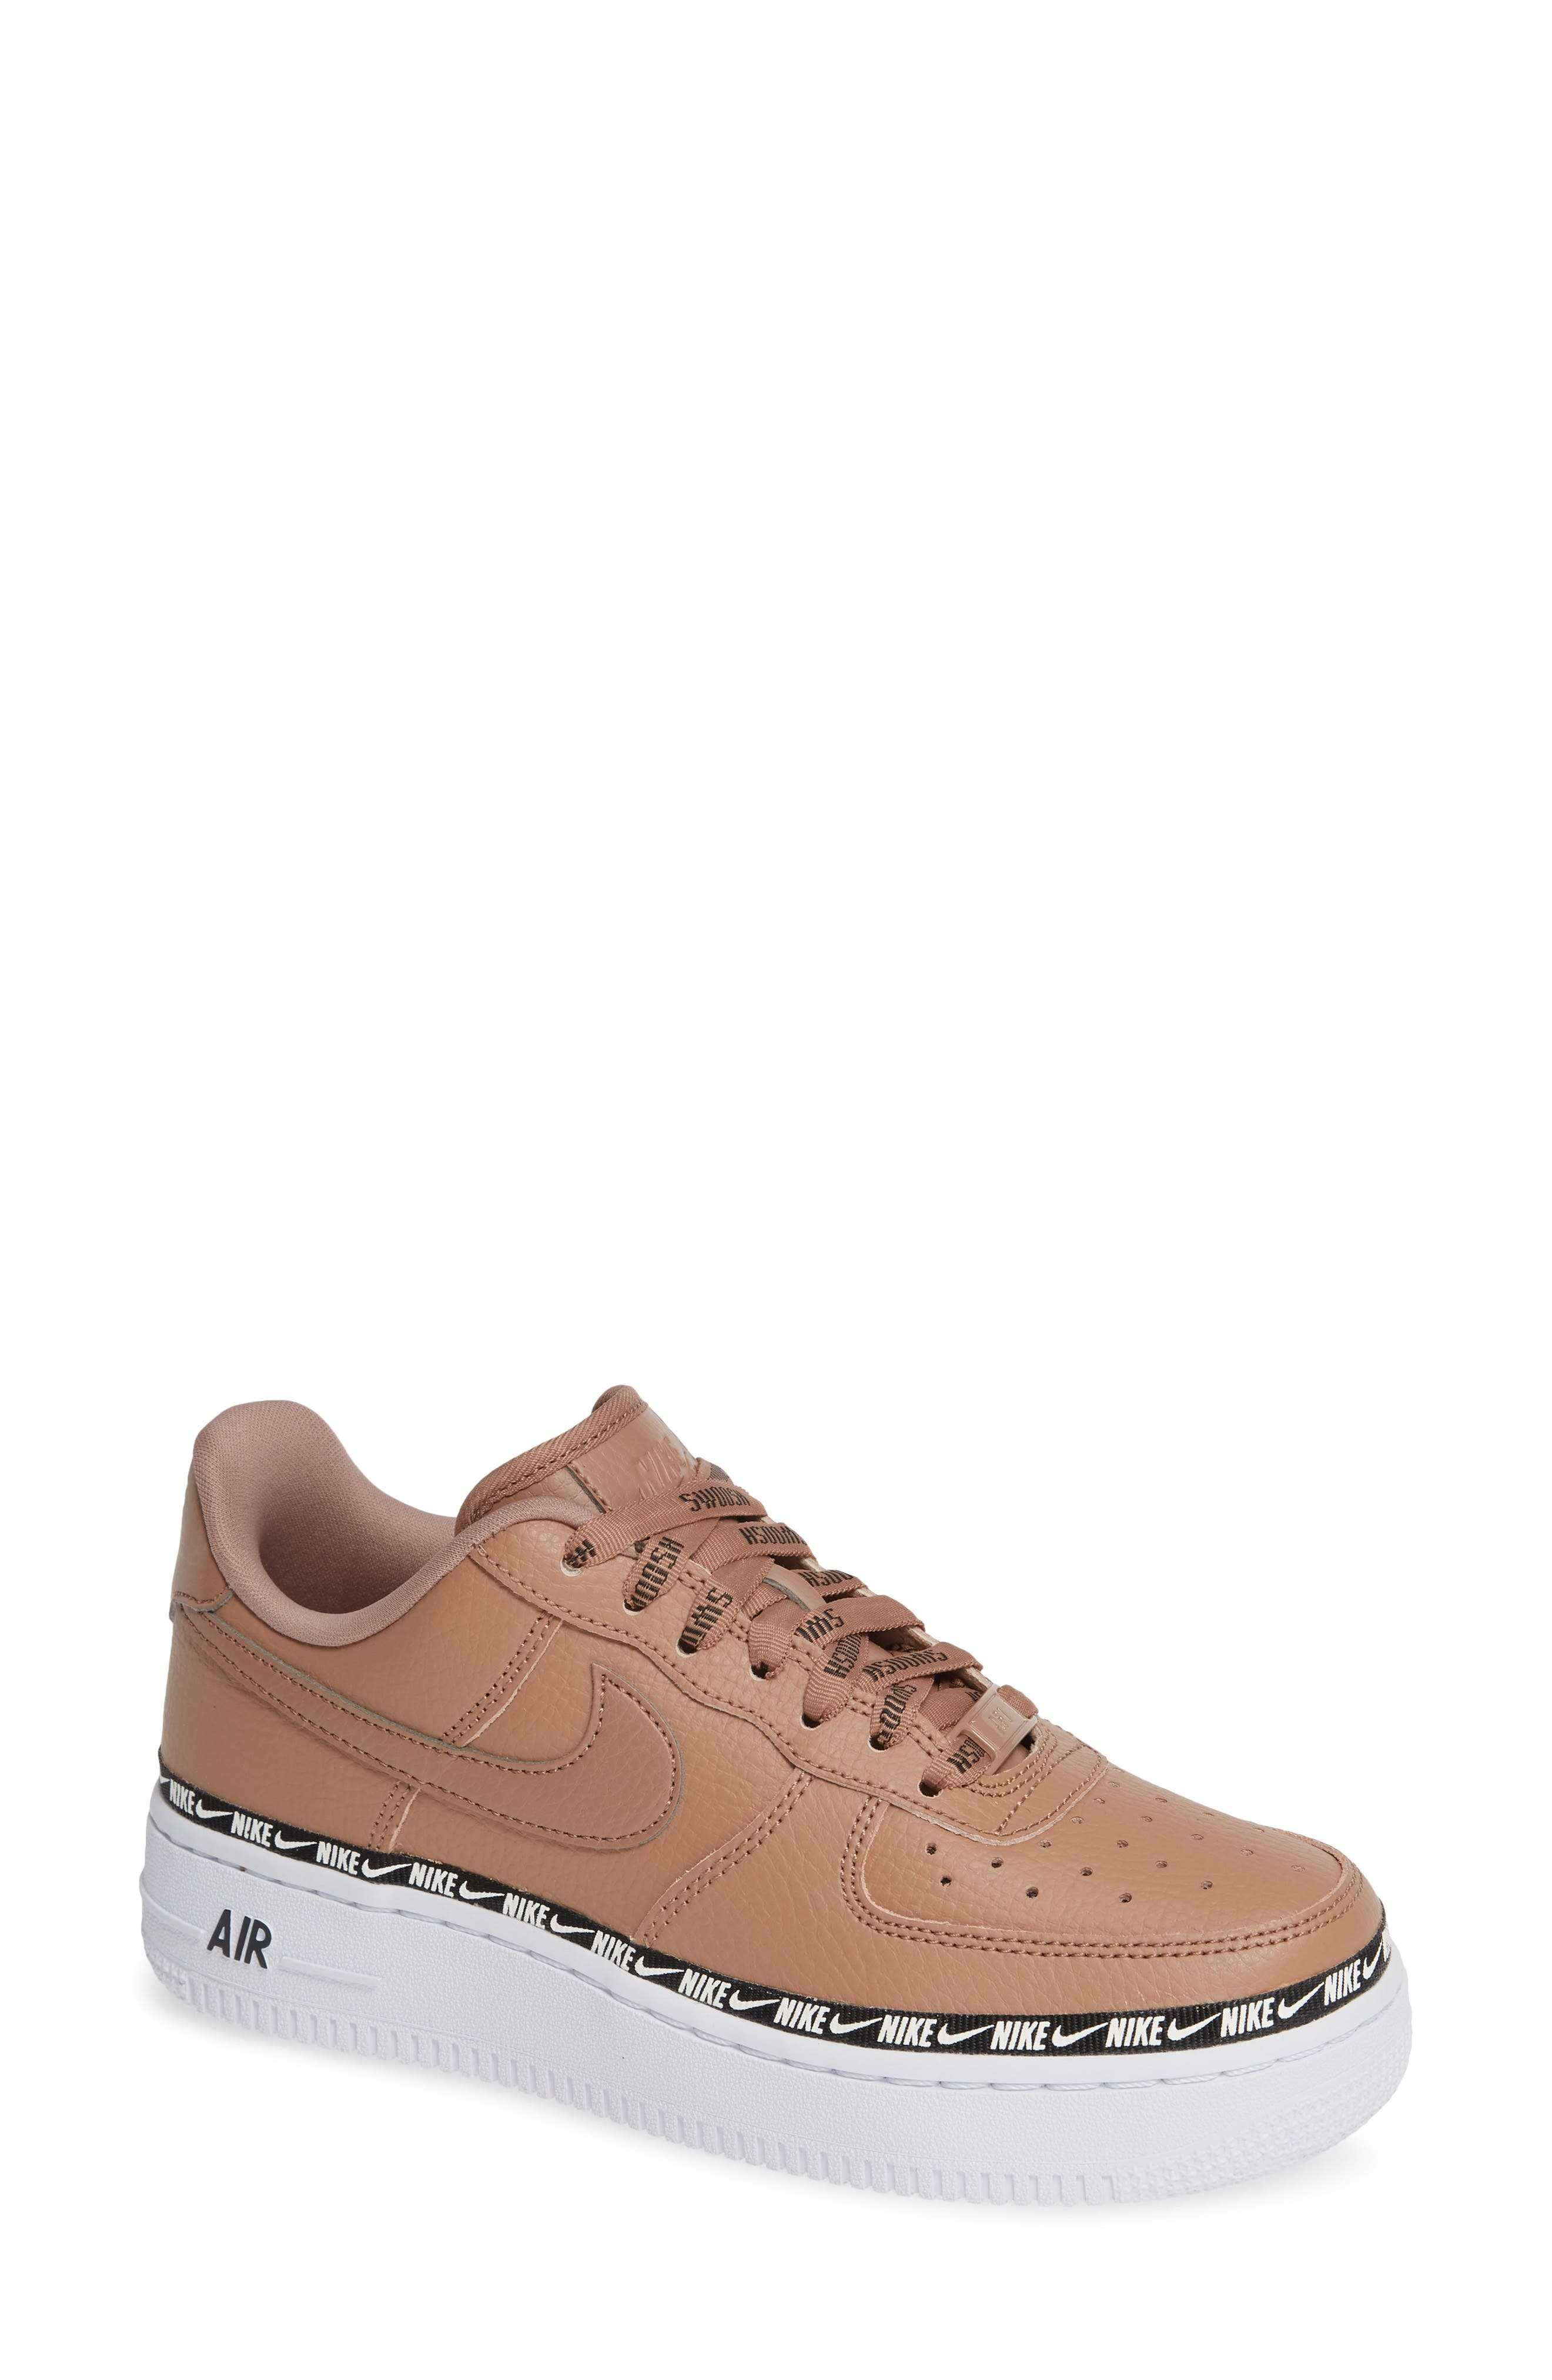 Air Force 1 '07 SE Premium Sneaker,                         Main,                         color, DESERT DUST/ BLACK/ WHITE